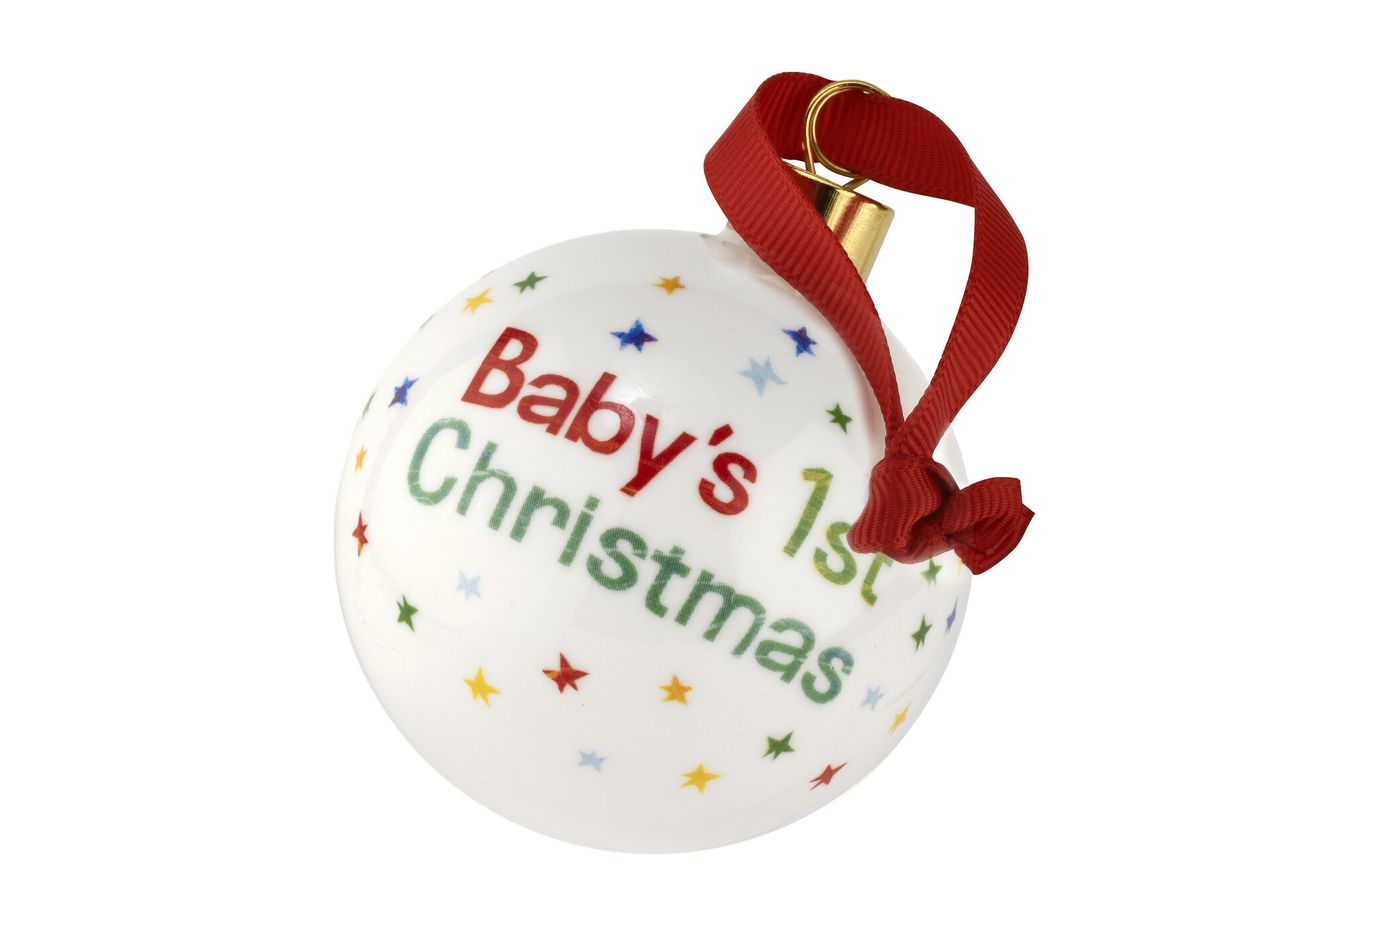 Portmeirion The Very Hungry Caterpillar by Eric Carle Bauble Baby 1st Xmas thumb 2